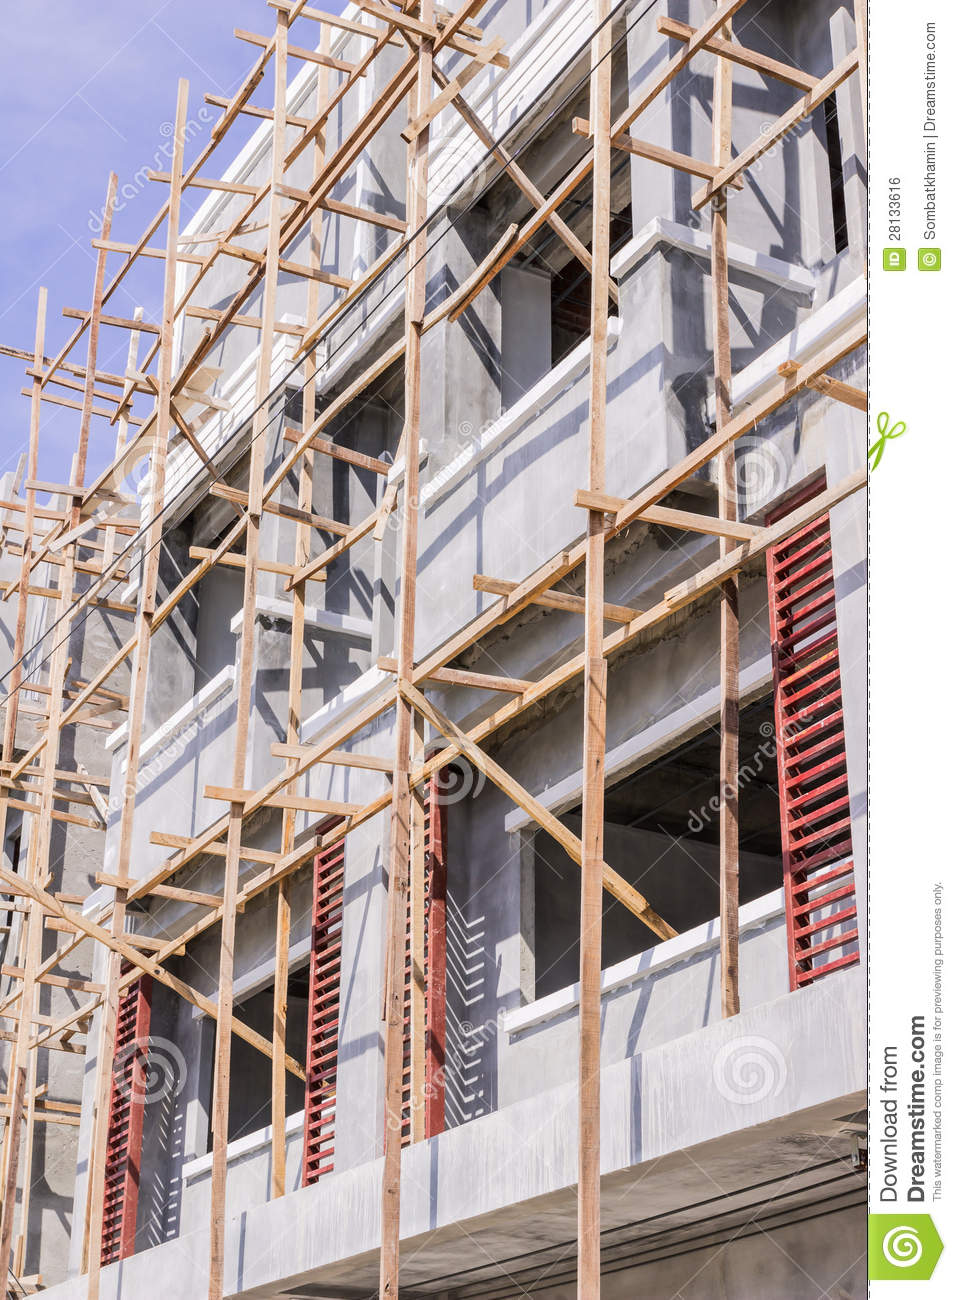 Wooden Scaffolding For Construction Site Royalty Free